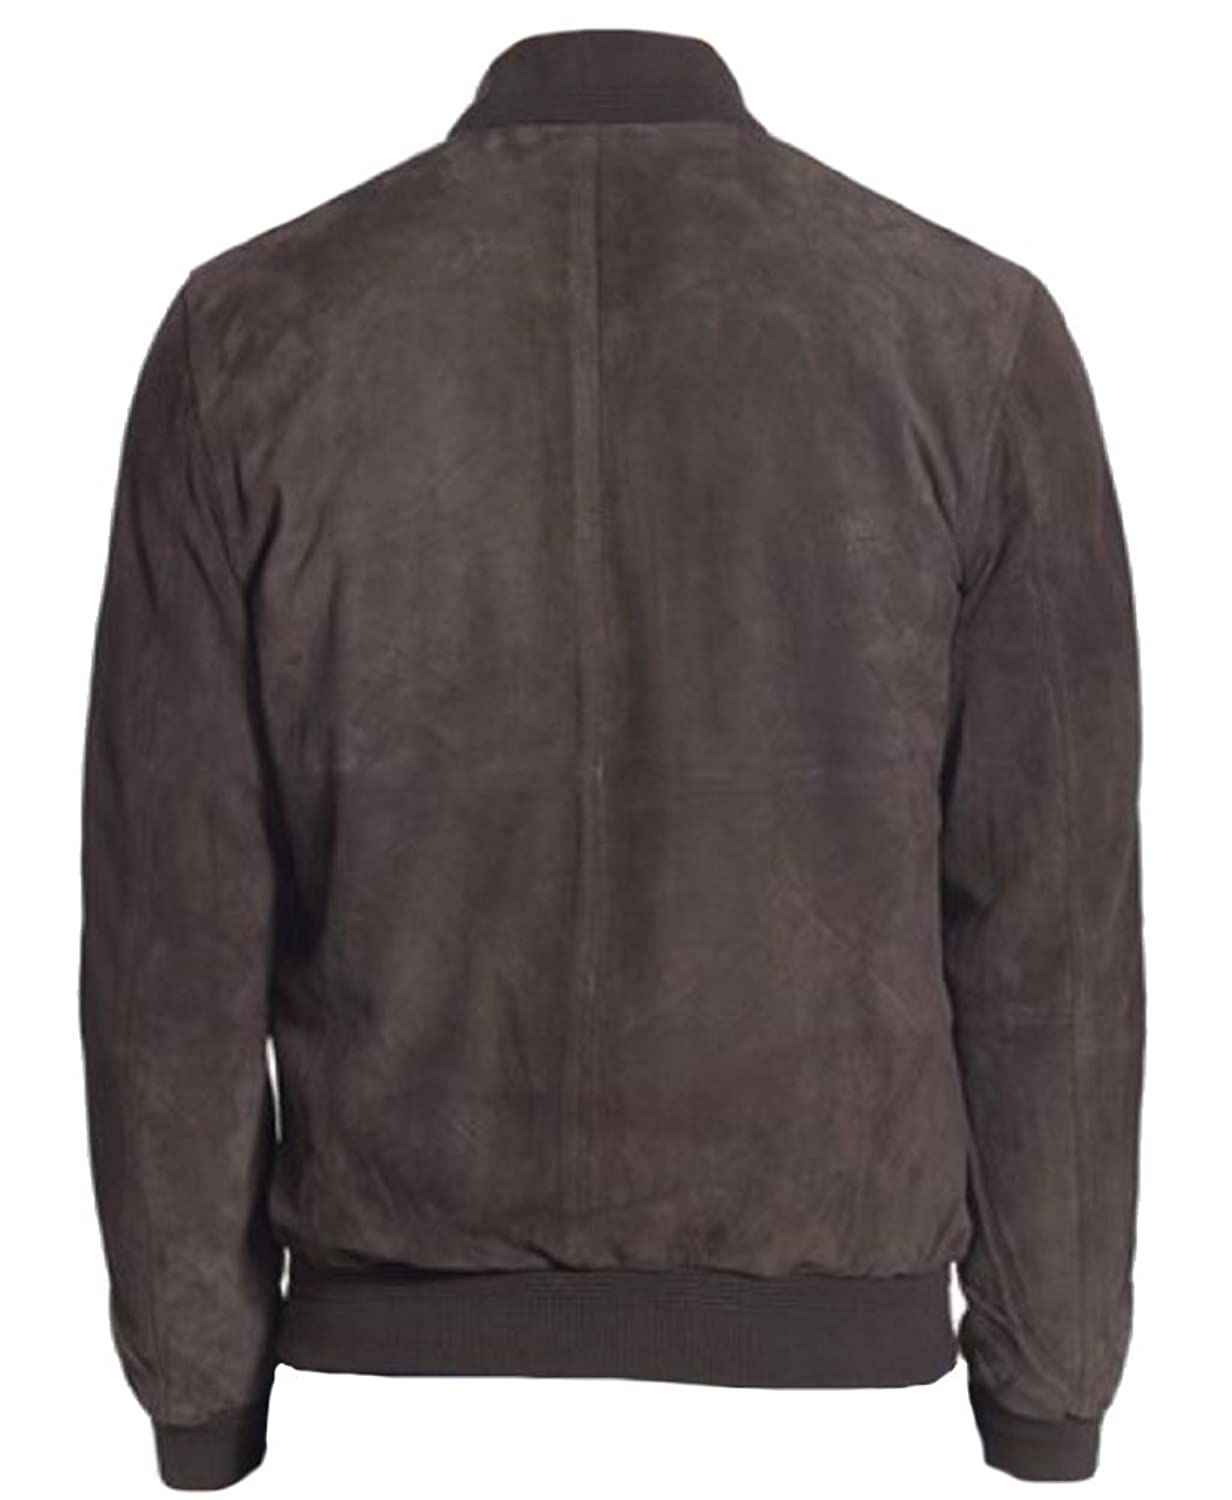 Classyak Men's Fashion Bomber Style High Quality Real Leather Jacket